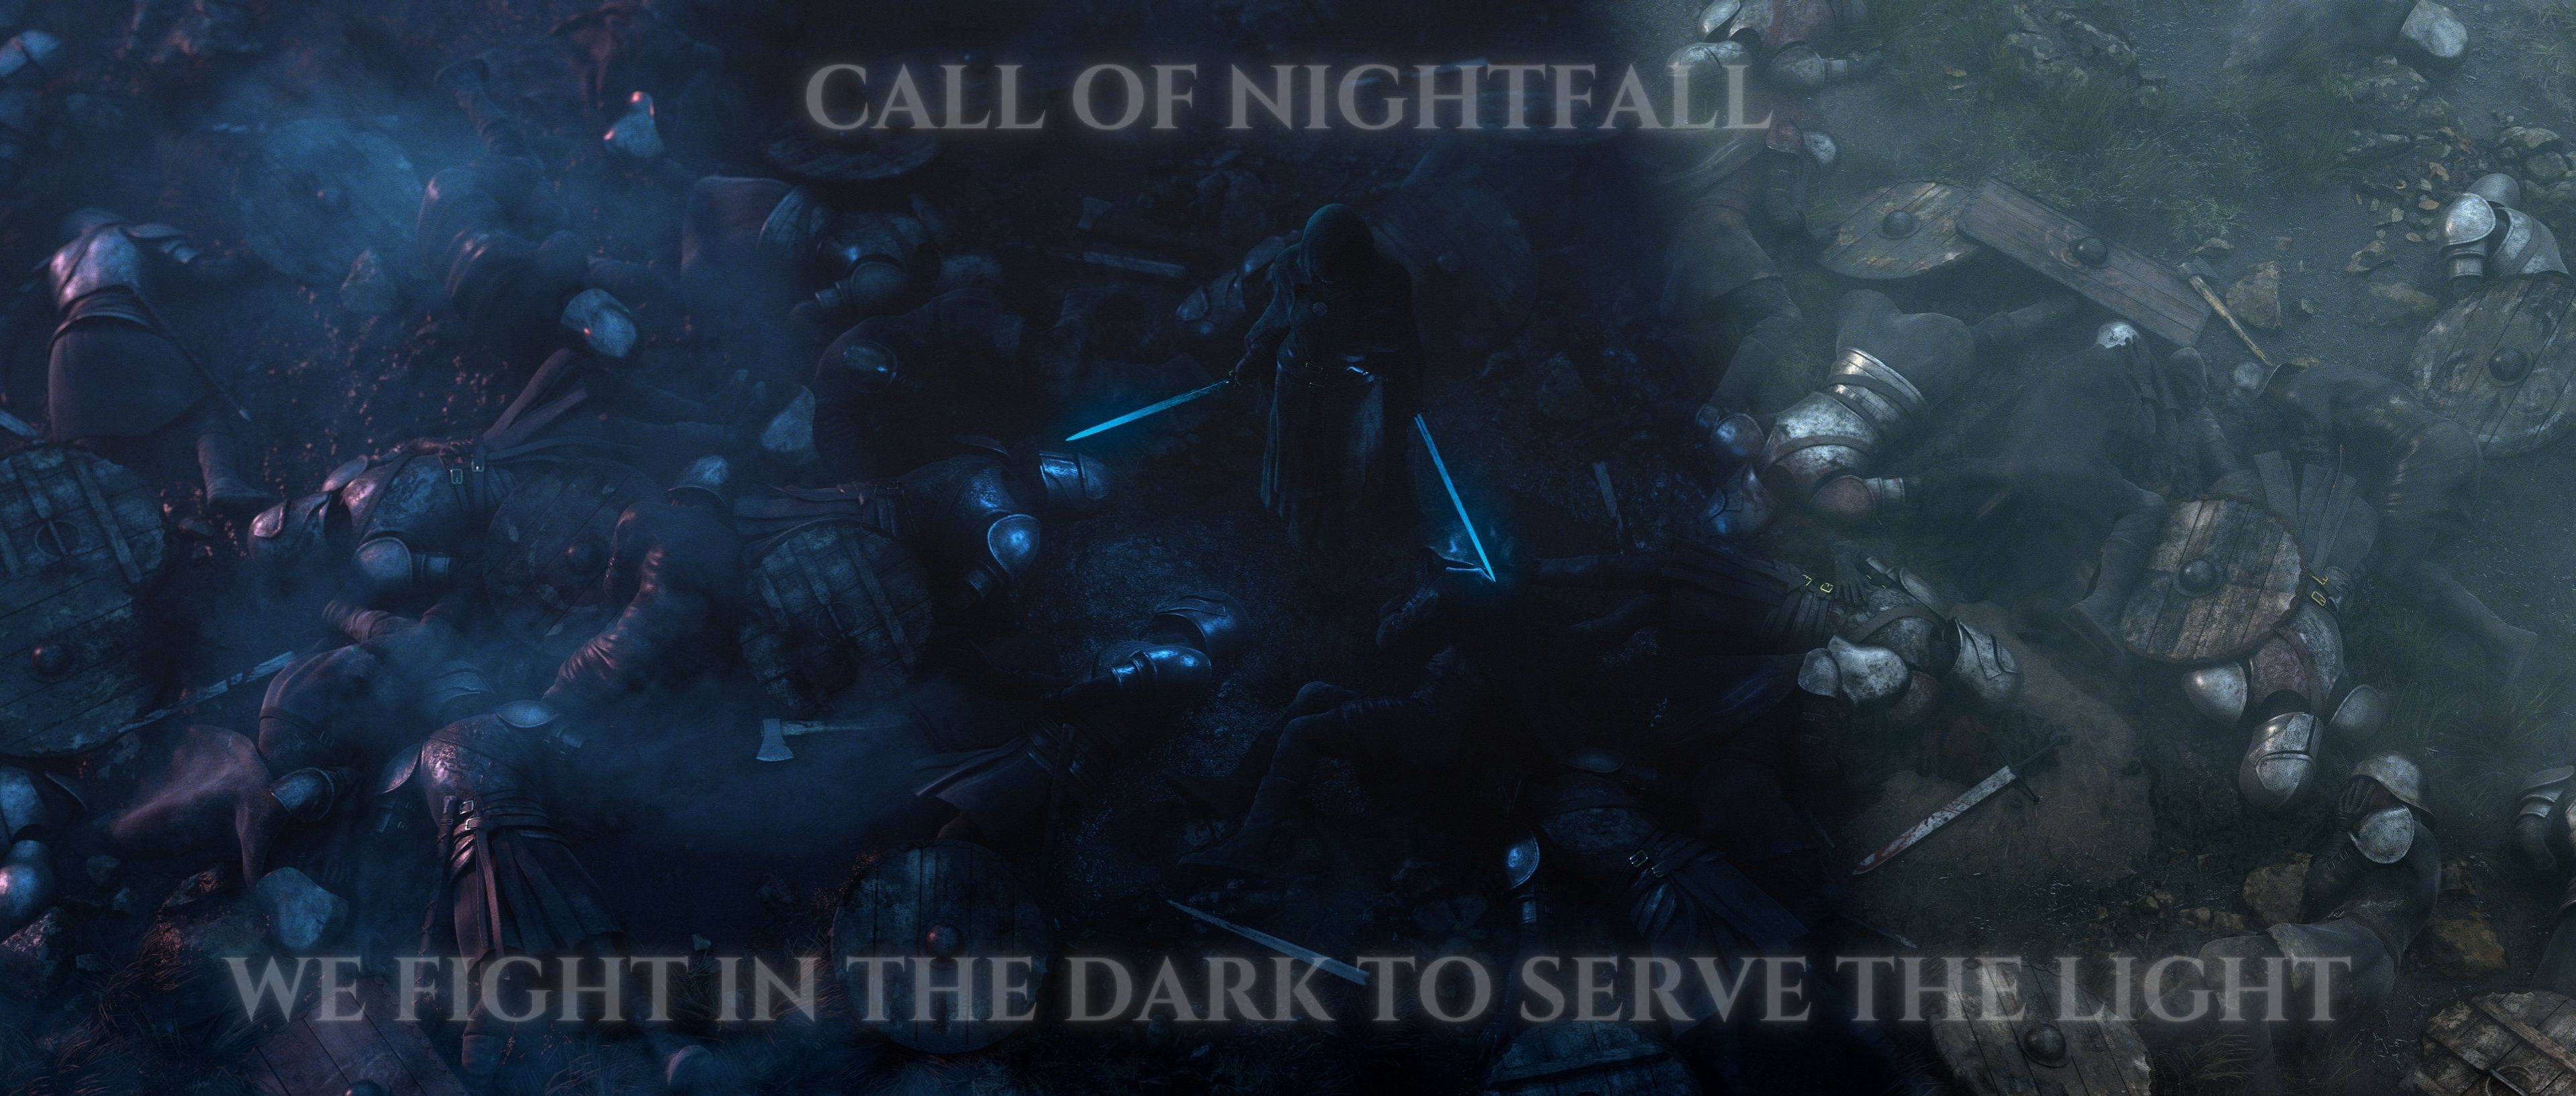 Call of Nightfall we fight in the dark to serve the light